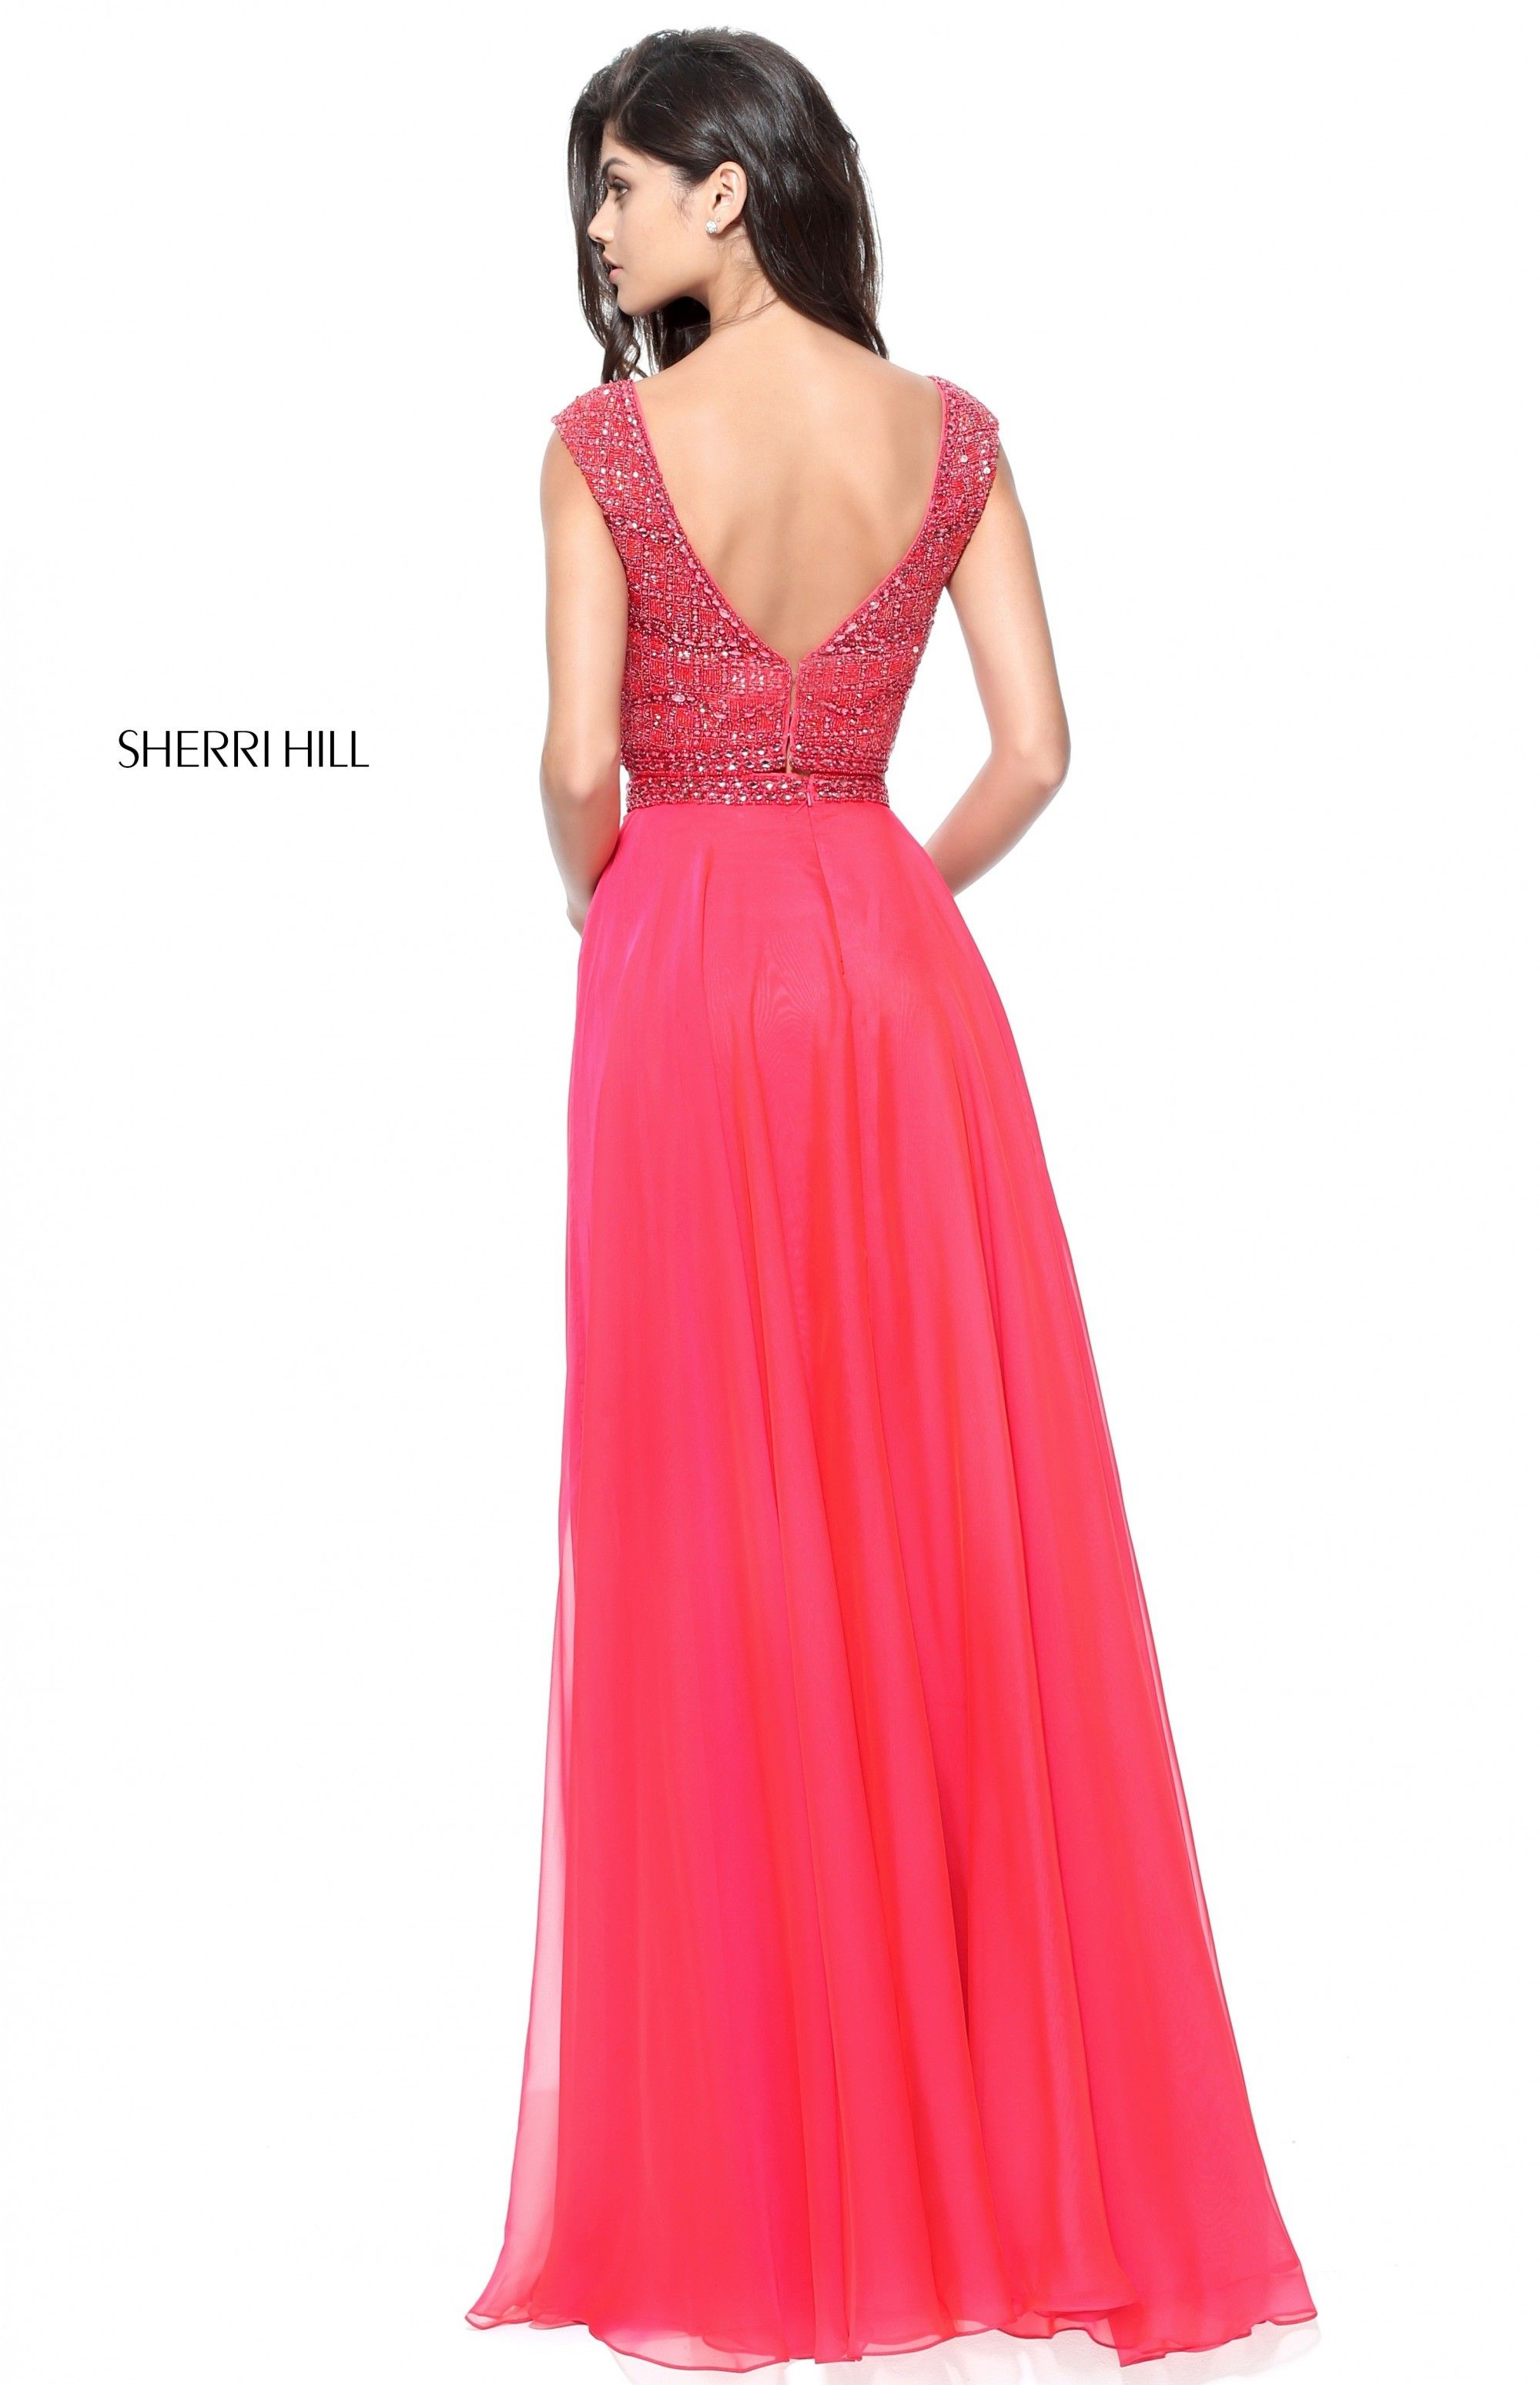 Sherri hill prom dress in lovely dresses pinterest